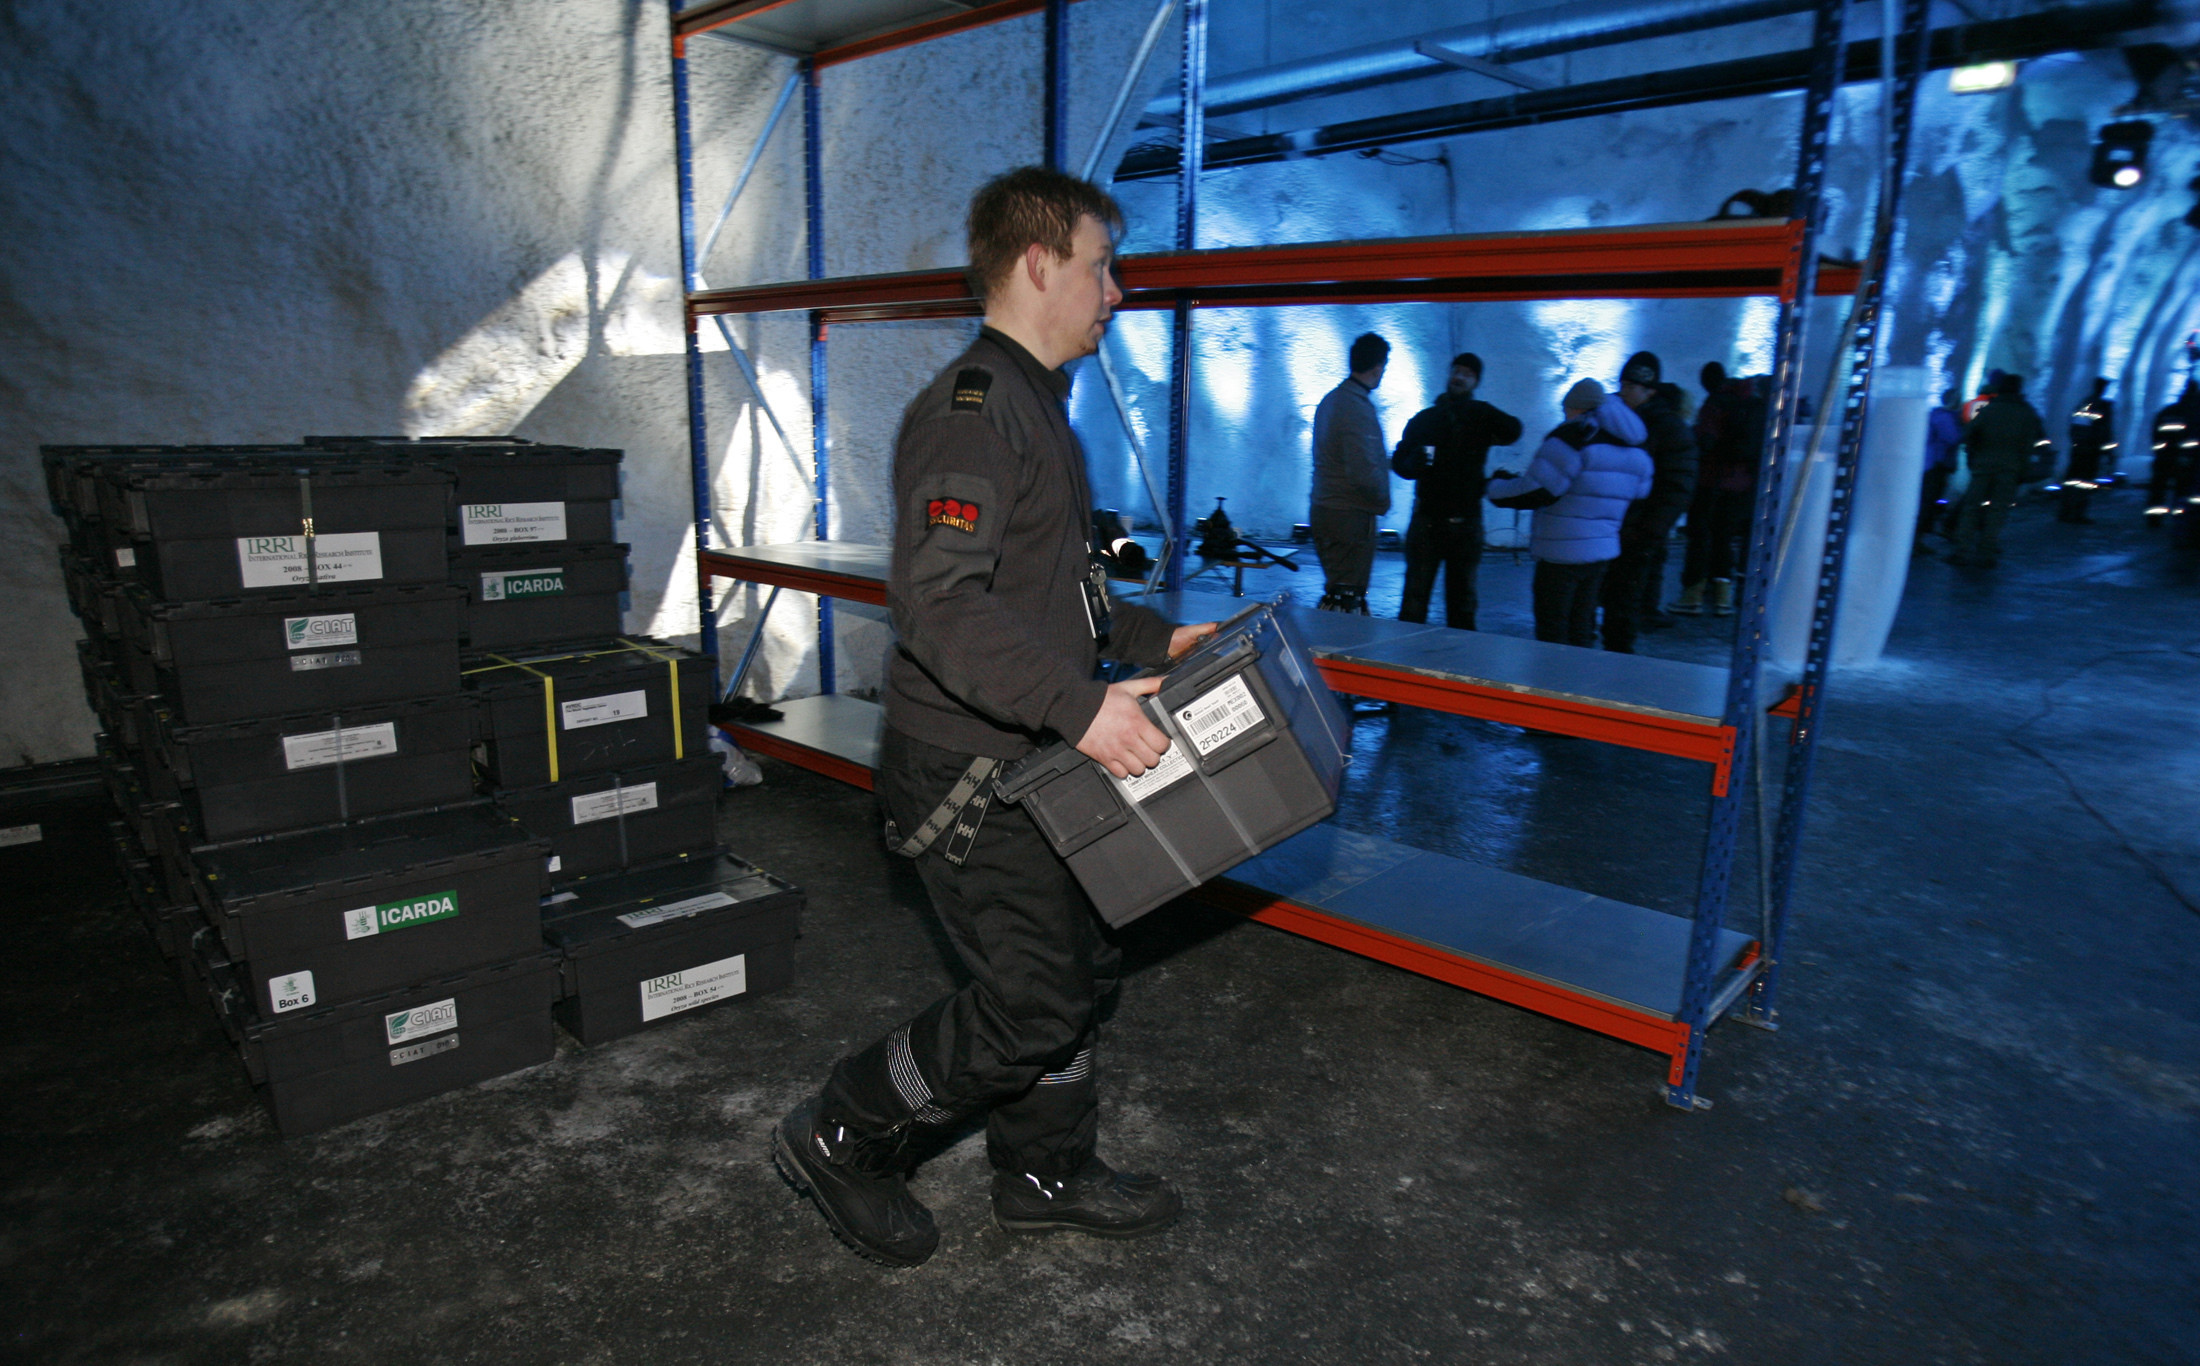 A worker carries a box of seeds into the main storage room during the opening ceremony of the Global Seed Vault in Longyearbyen February 26, 2008.   REUTERS/Bob Strong (NORWAY) - GM1E42Q1JY101